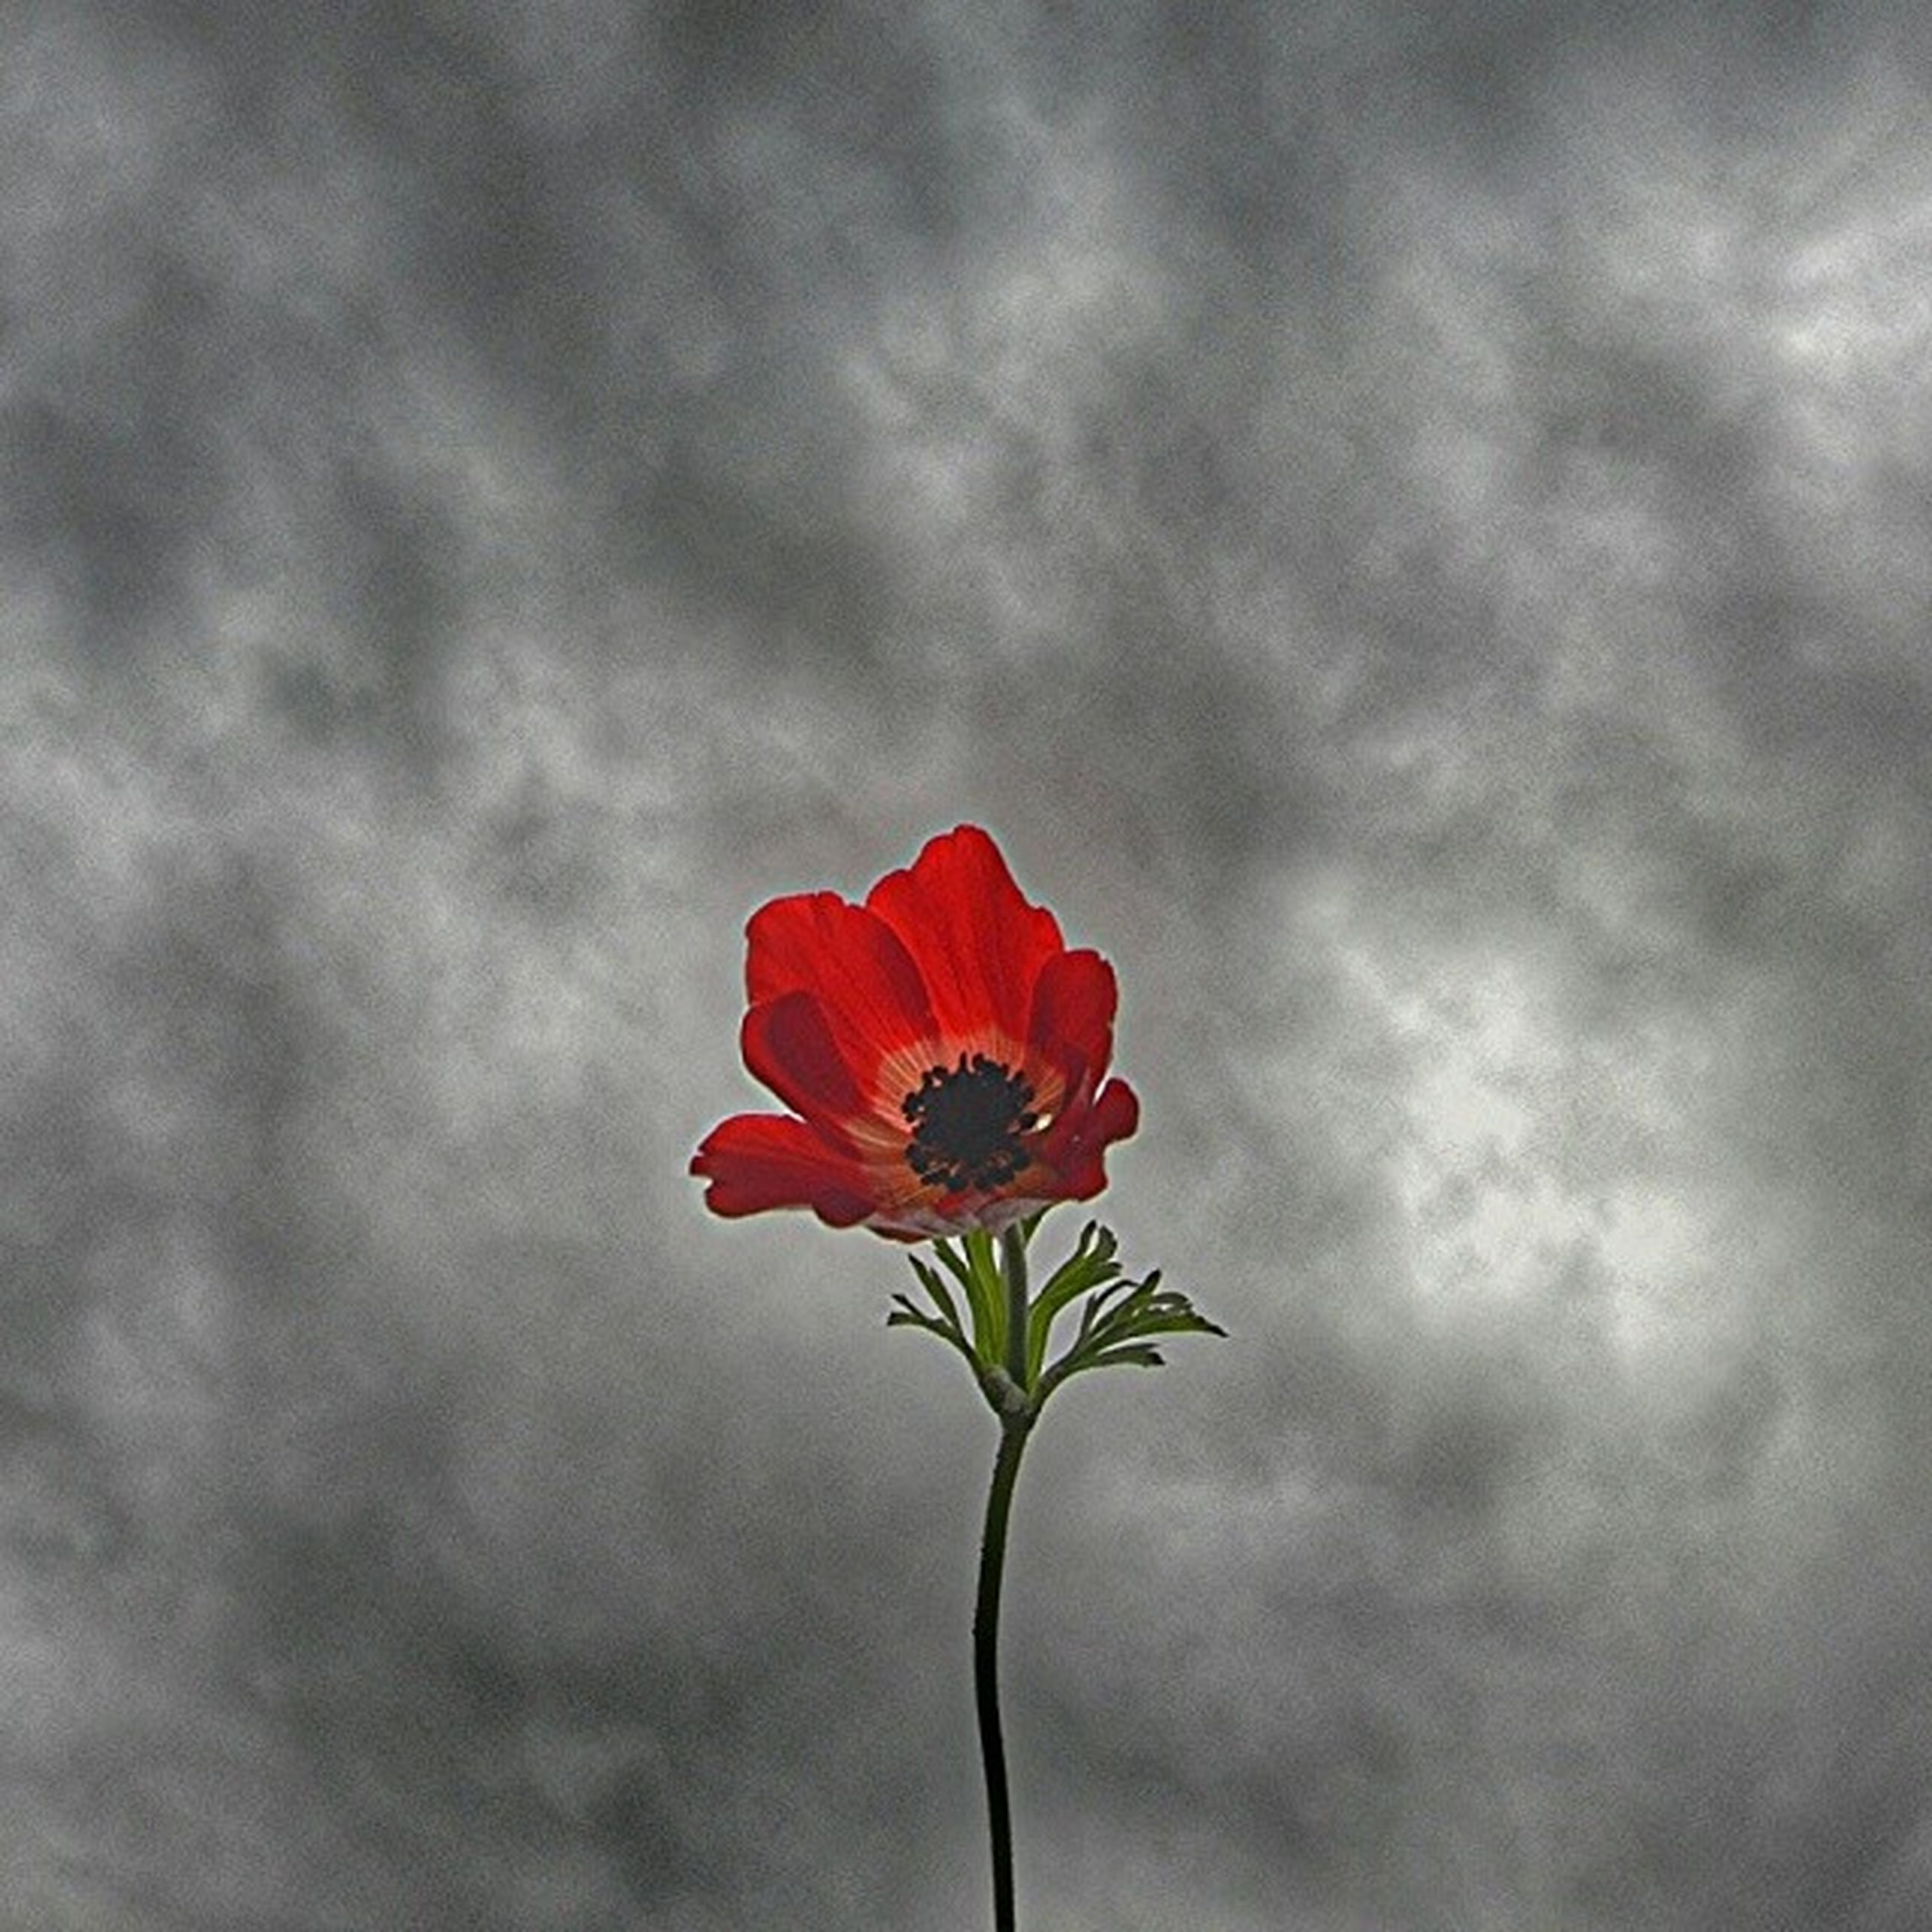 flower, petal, freshness, flower head, fragility, growth, red, beauty in nature, sky, single flower, nature, stem, blooming, cloud - sky, plant, close-up, focus on foreground, poppy, blossom, cloud